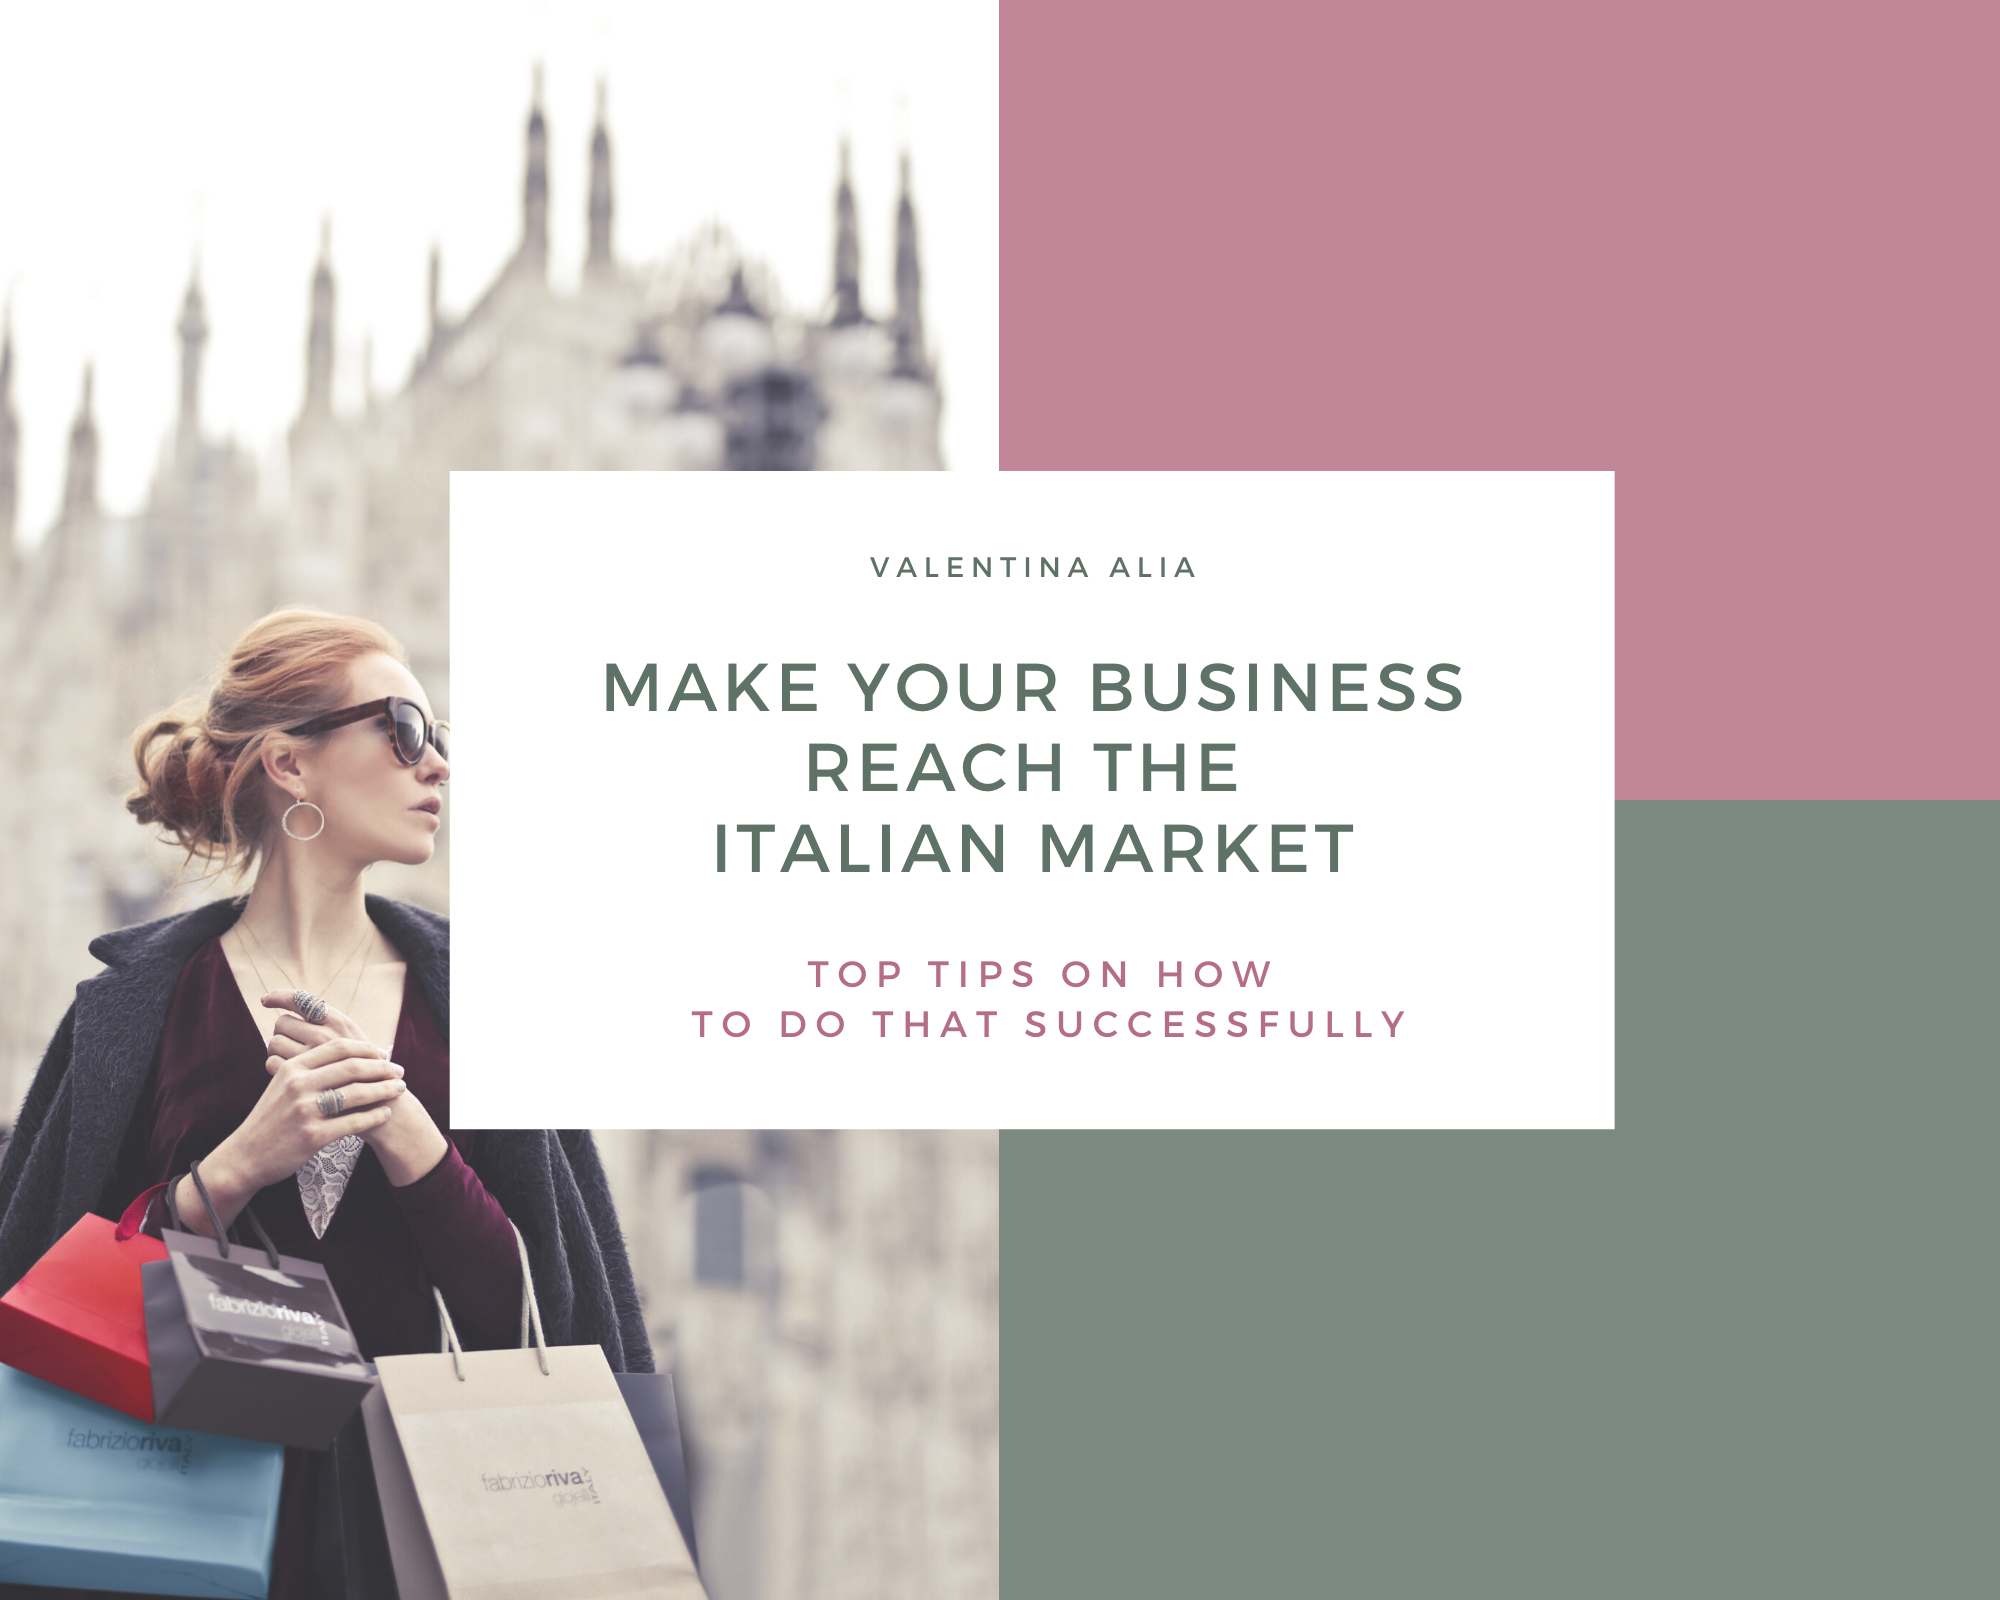 Make your business reach the Italian market